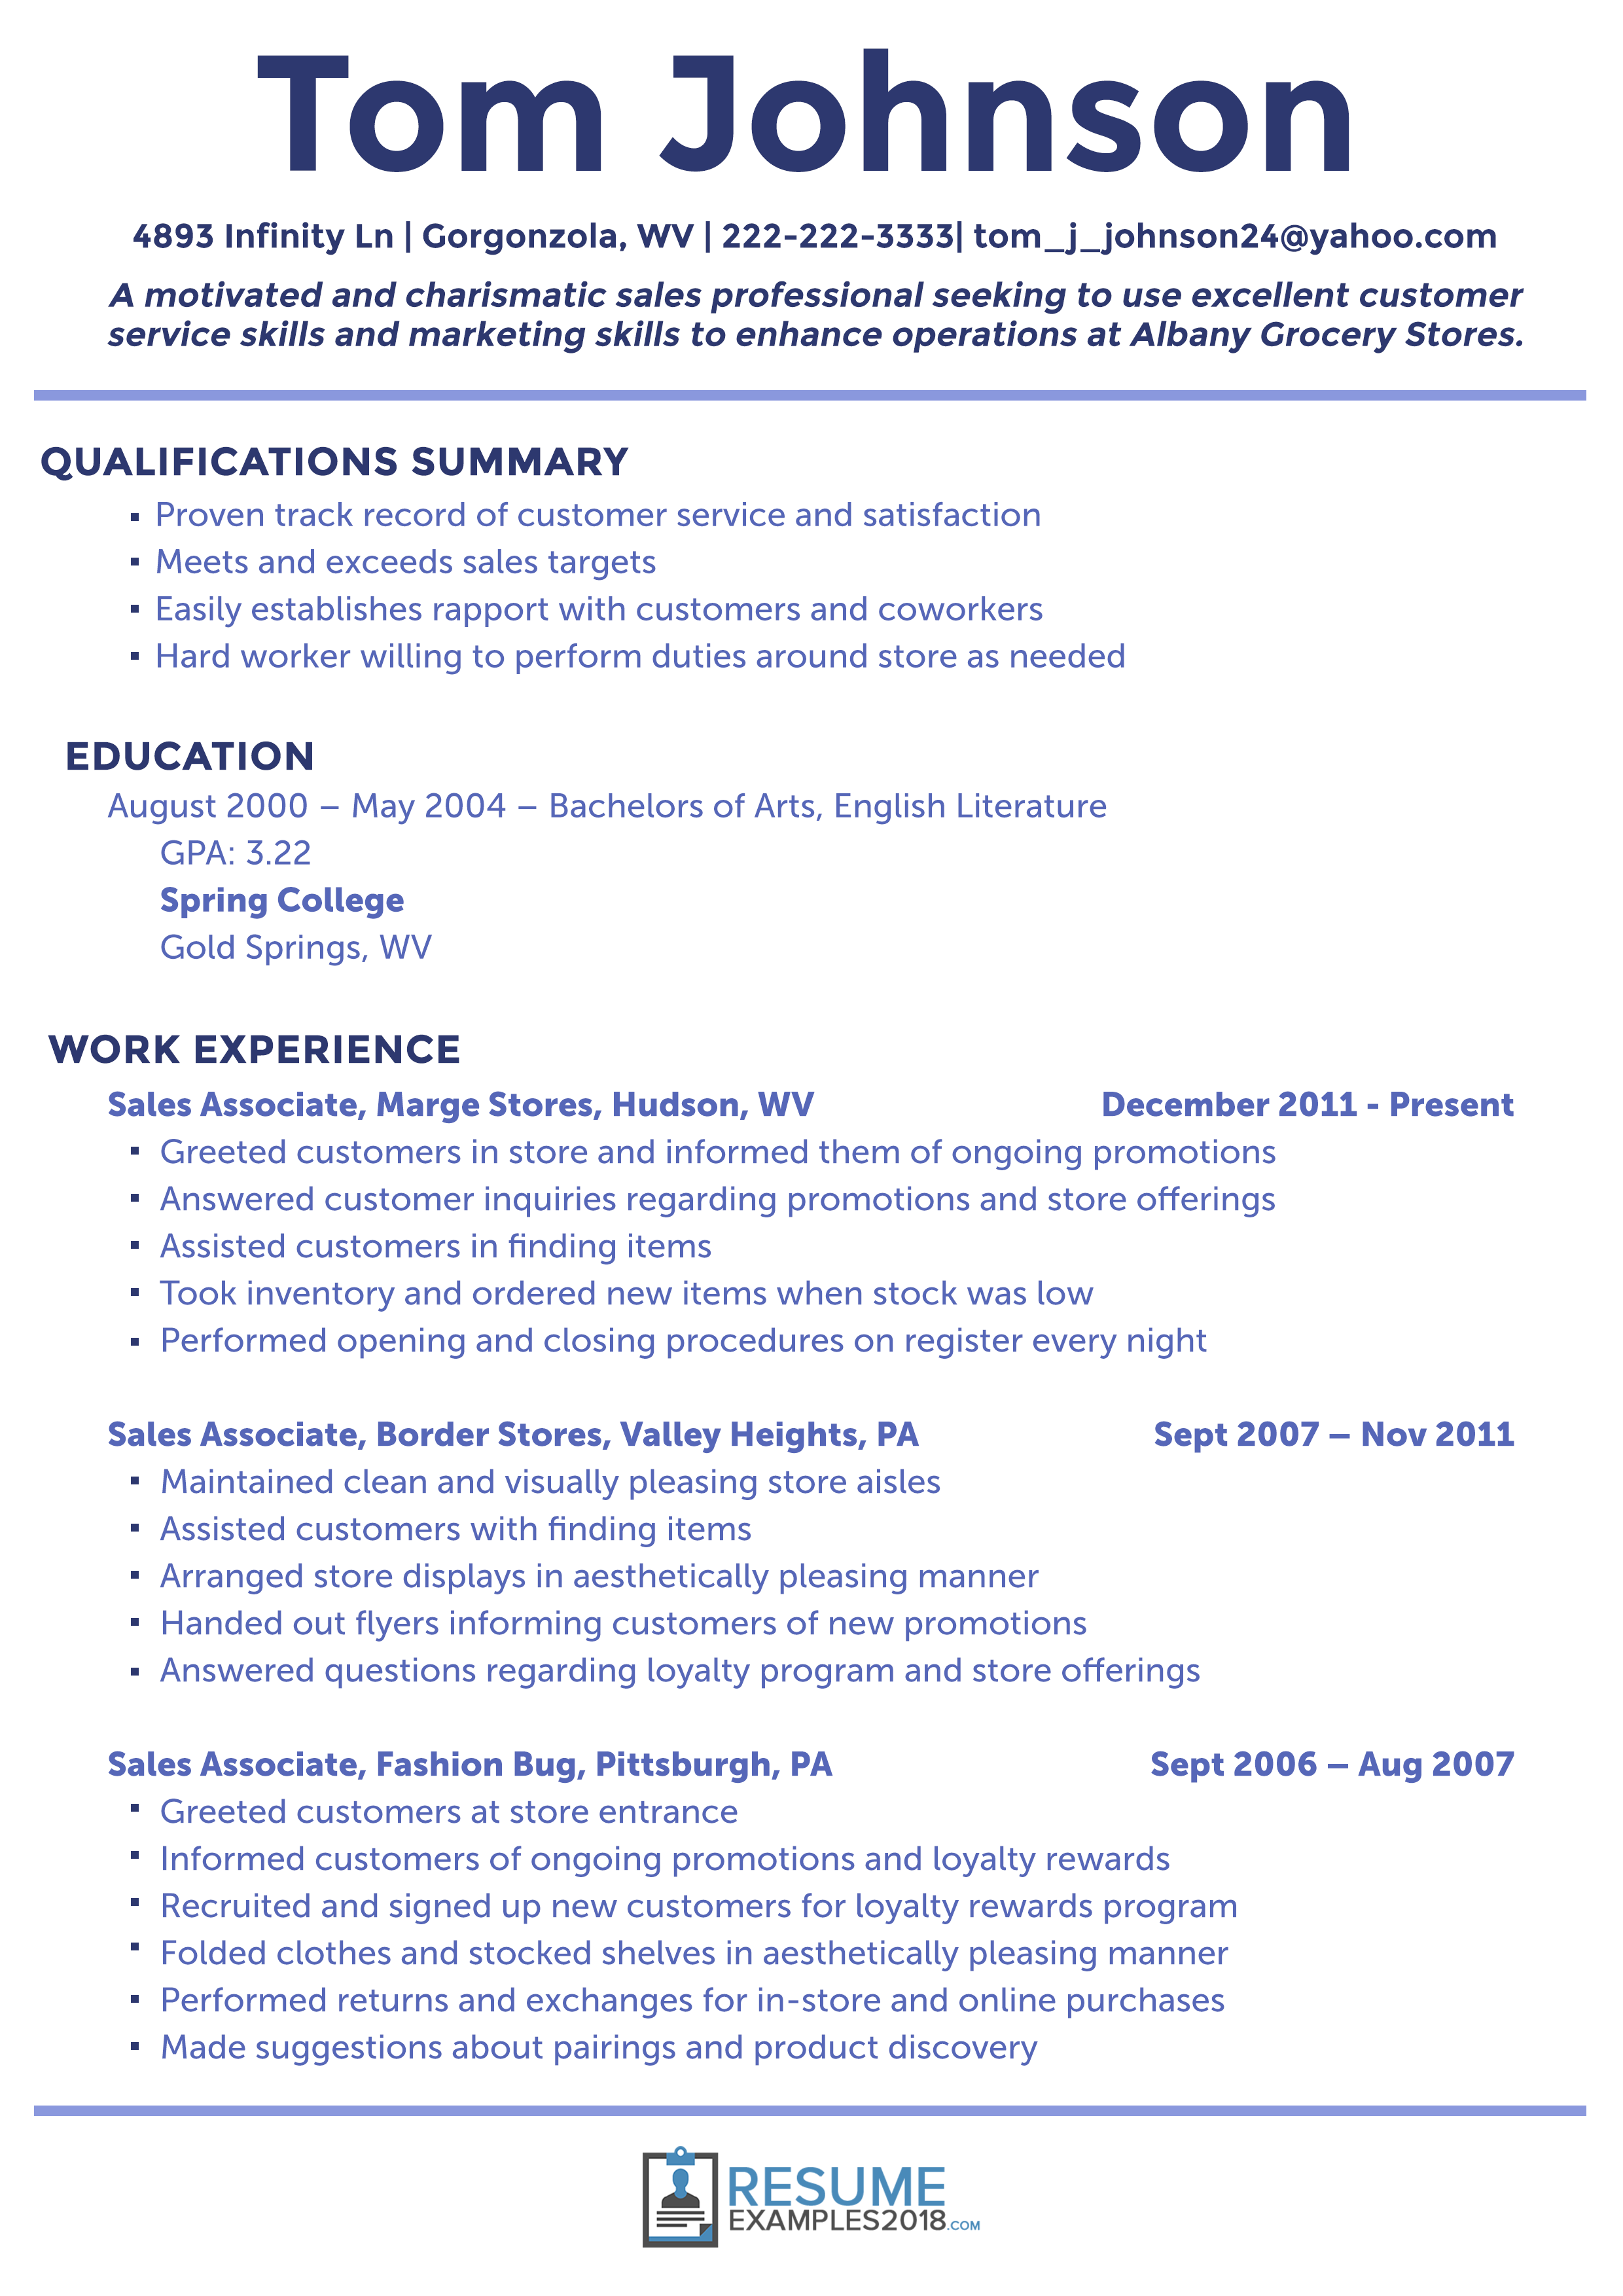 Resume Examples 2018 Customer Service Resume Examples Sales Resume Examples Good Resume Examples Resume Examples